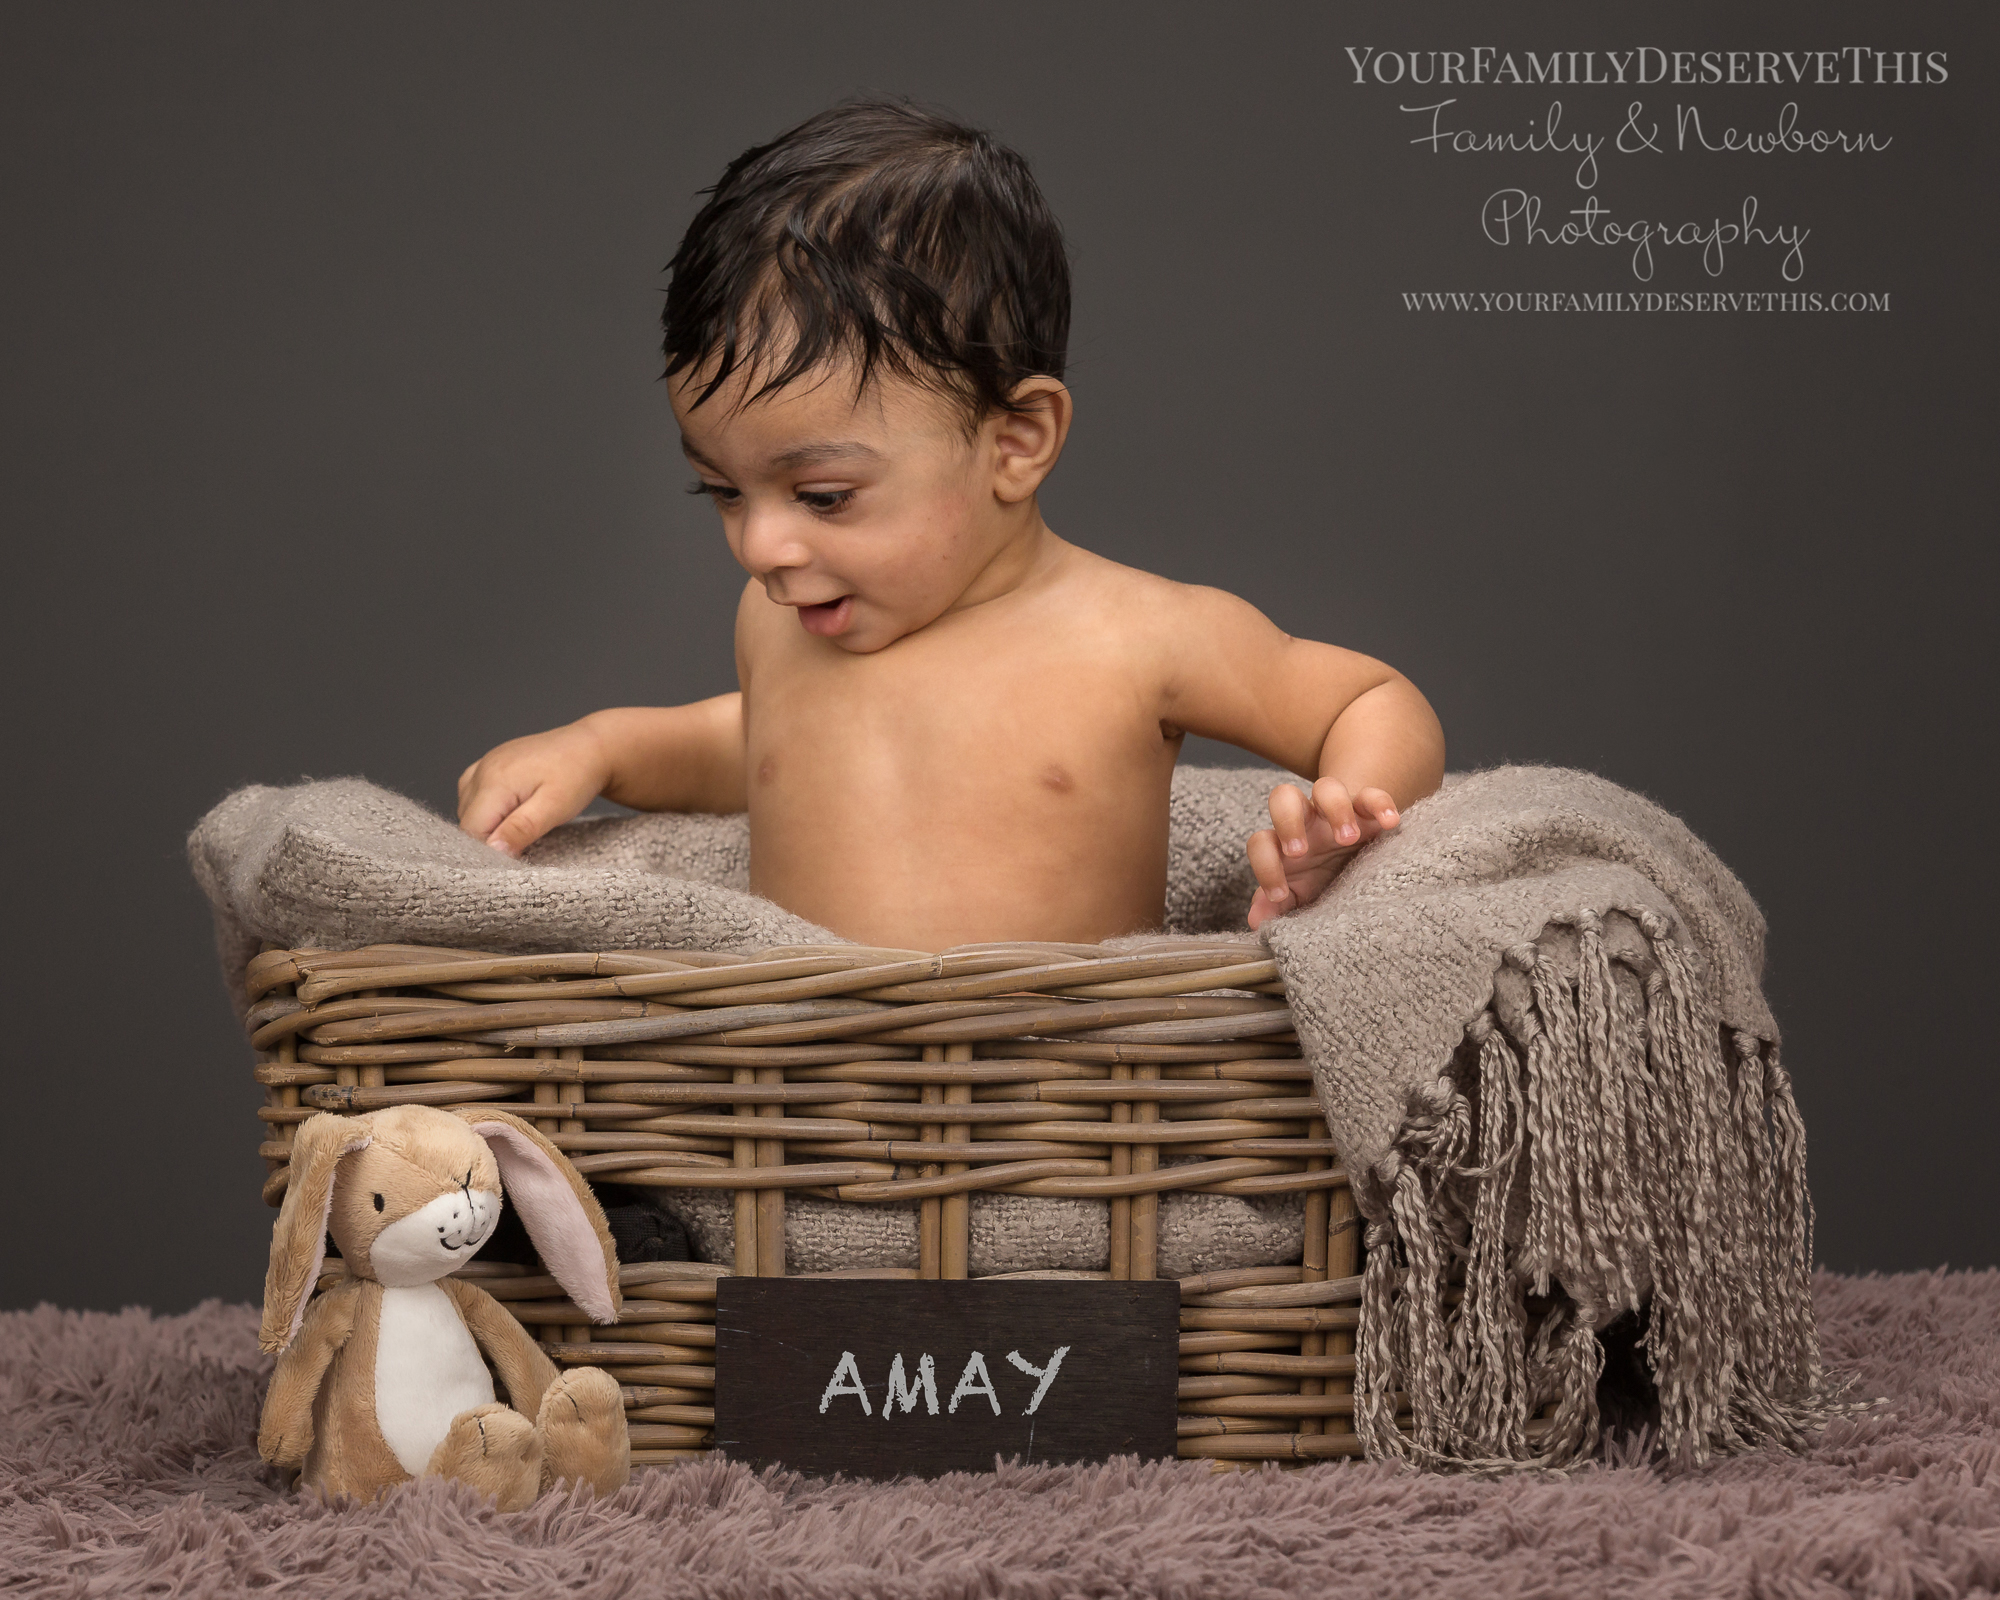 Amay bought his Little Nutbrown Hare along for his next photoshoot.  6 Month Baby Photoshoot.